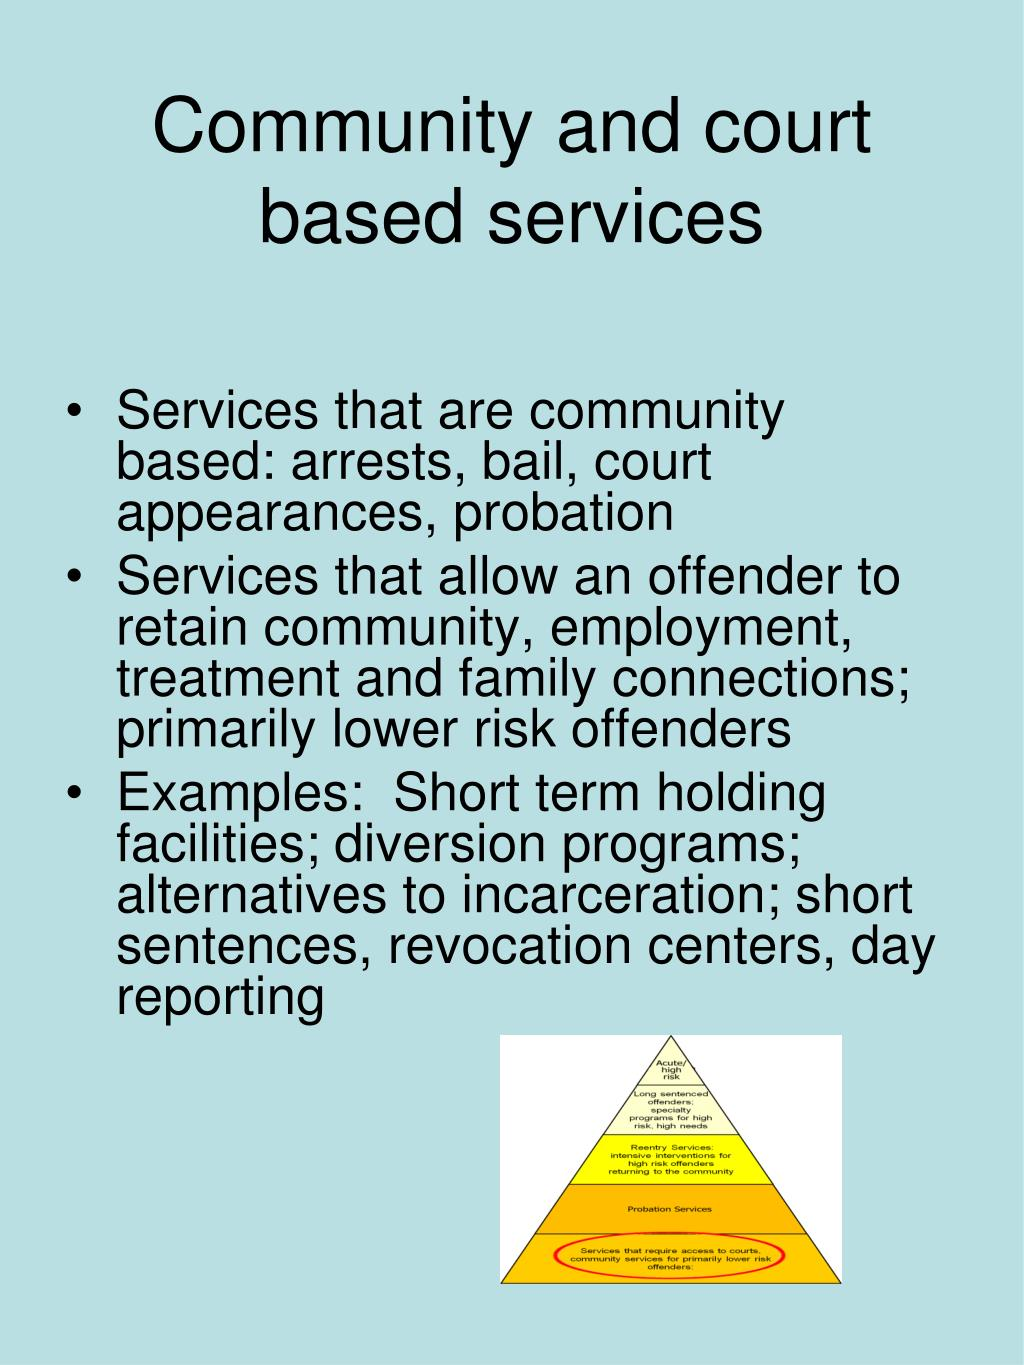 Community and court based services